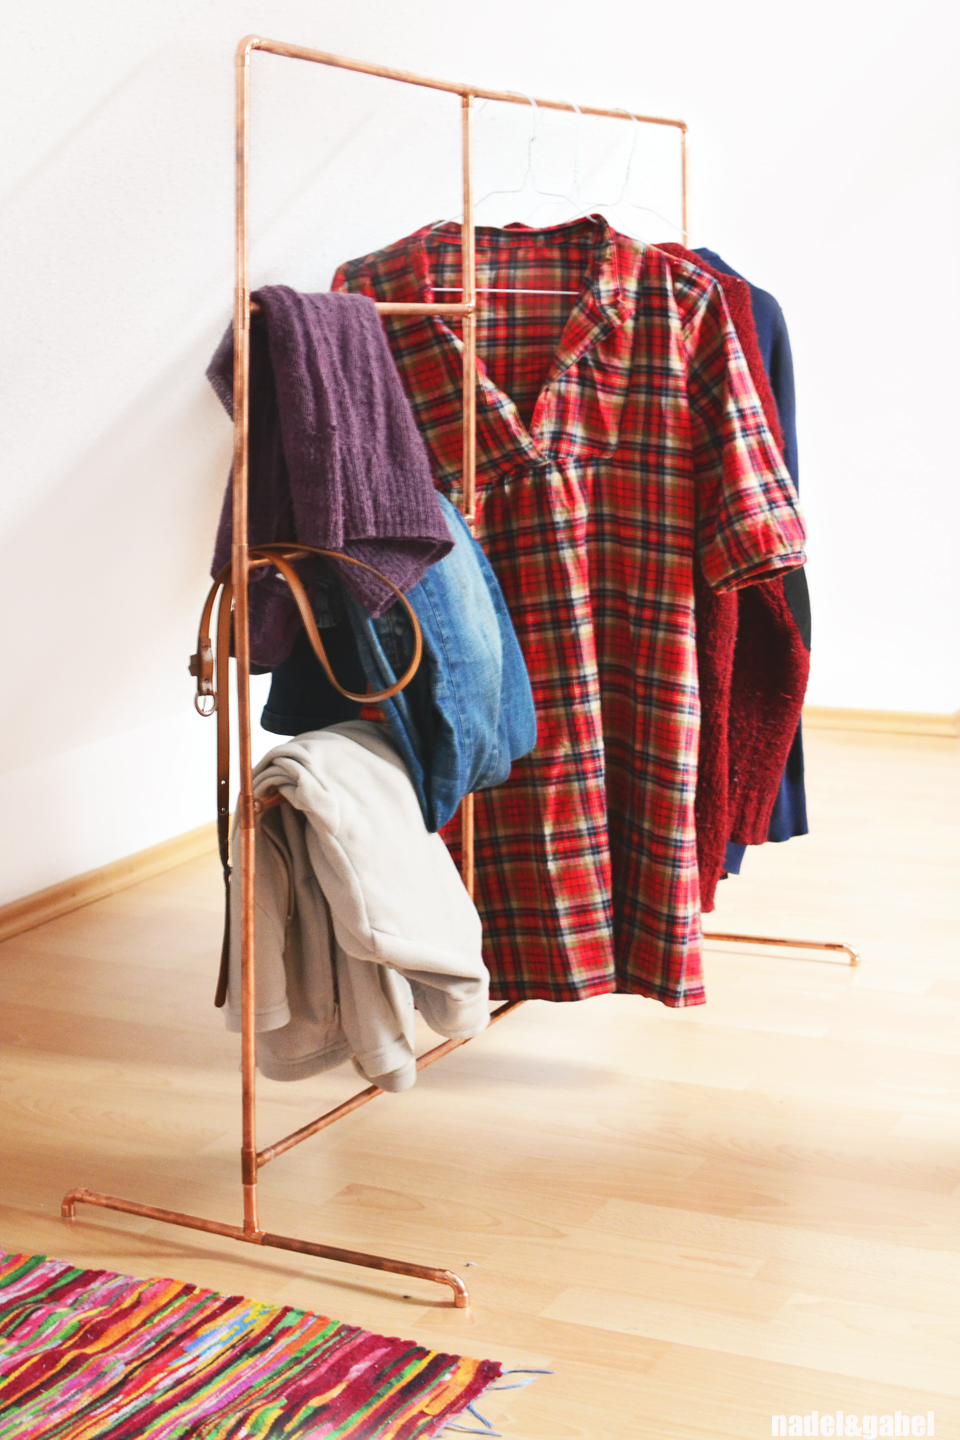 diy clothes rack from copper pipes